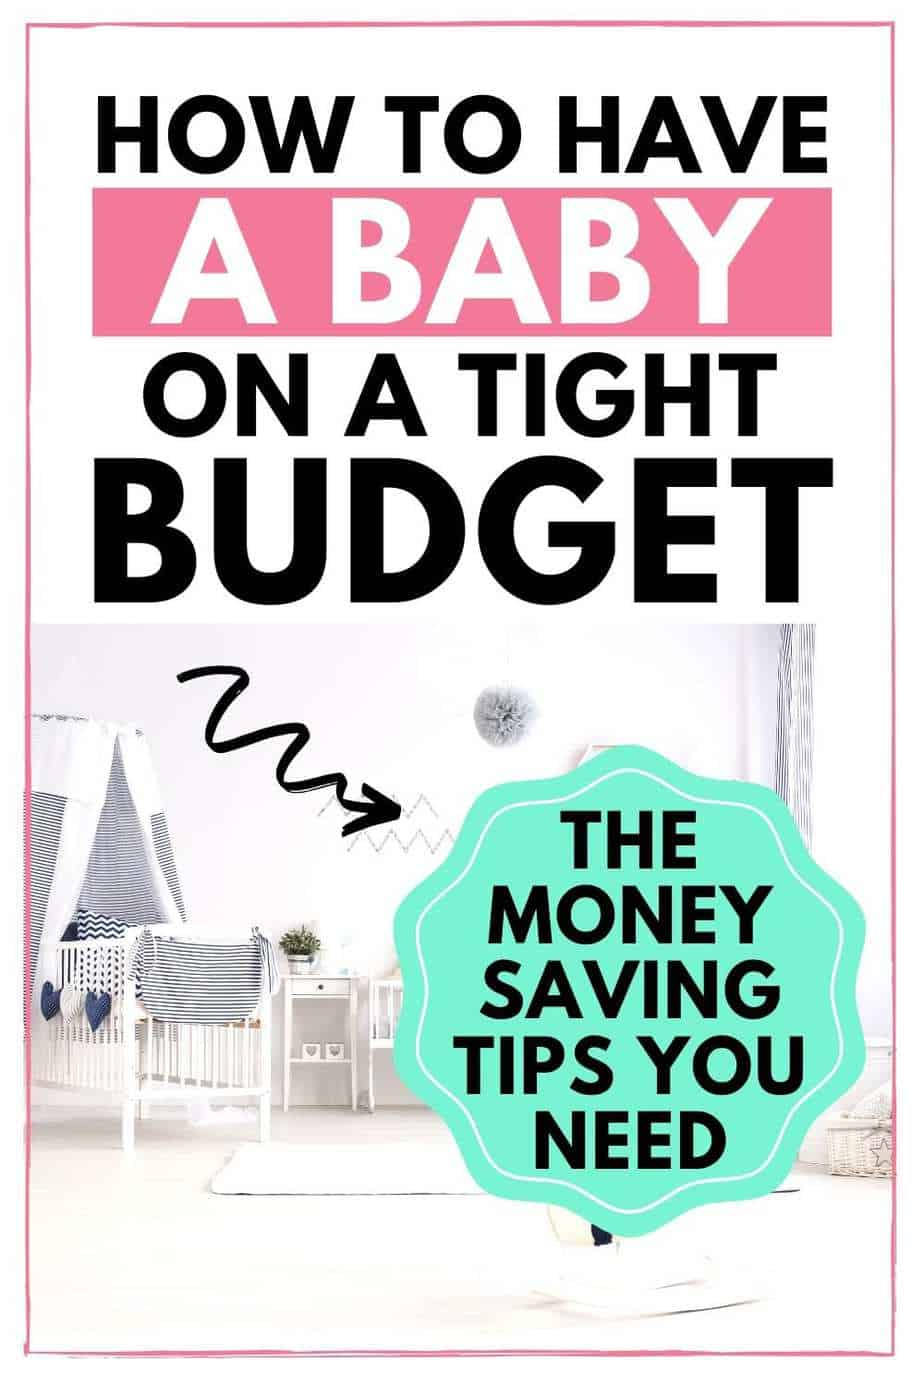 How to have a baby on a tight budget and save money on baby stuff